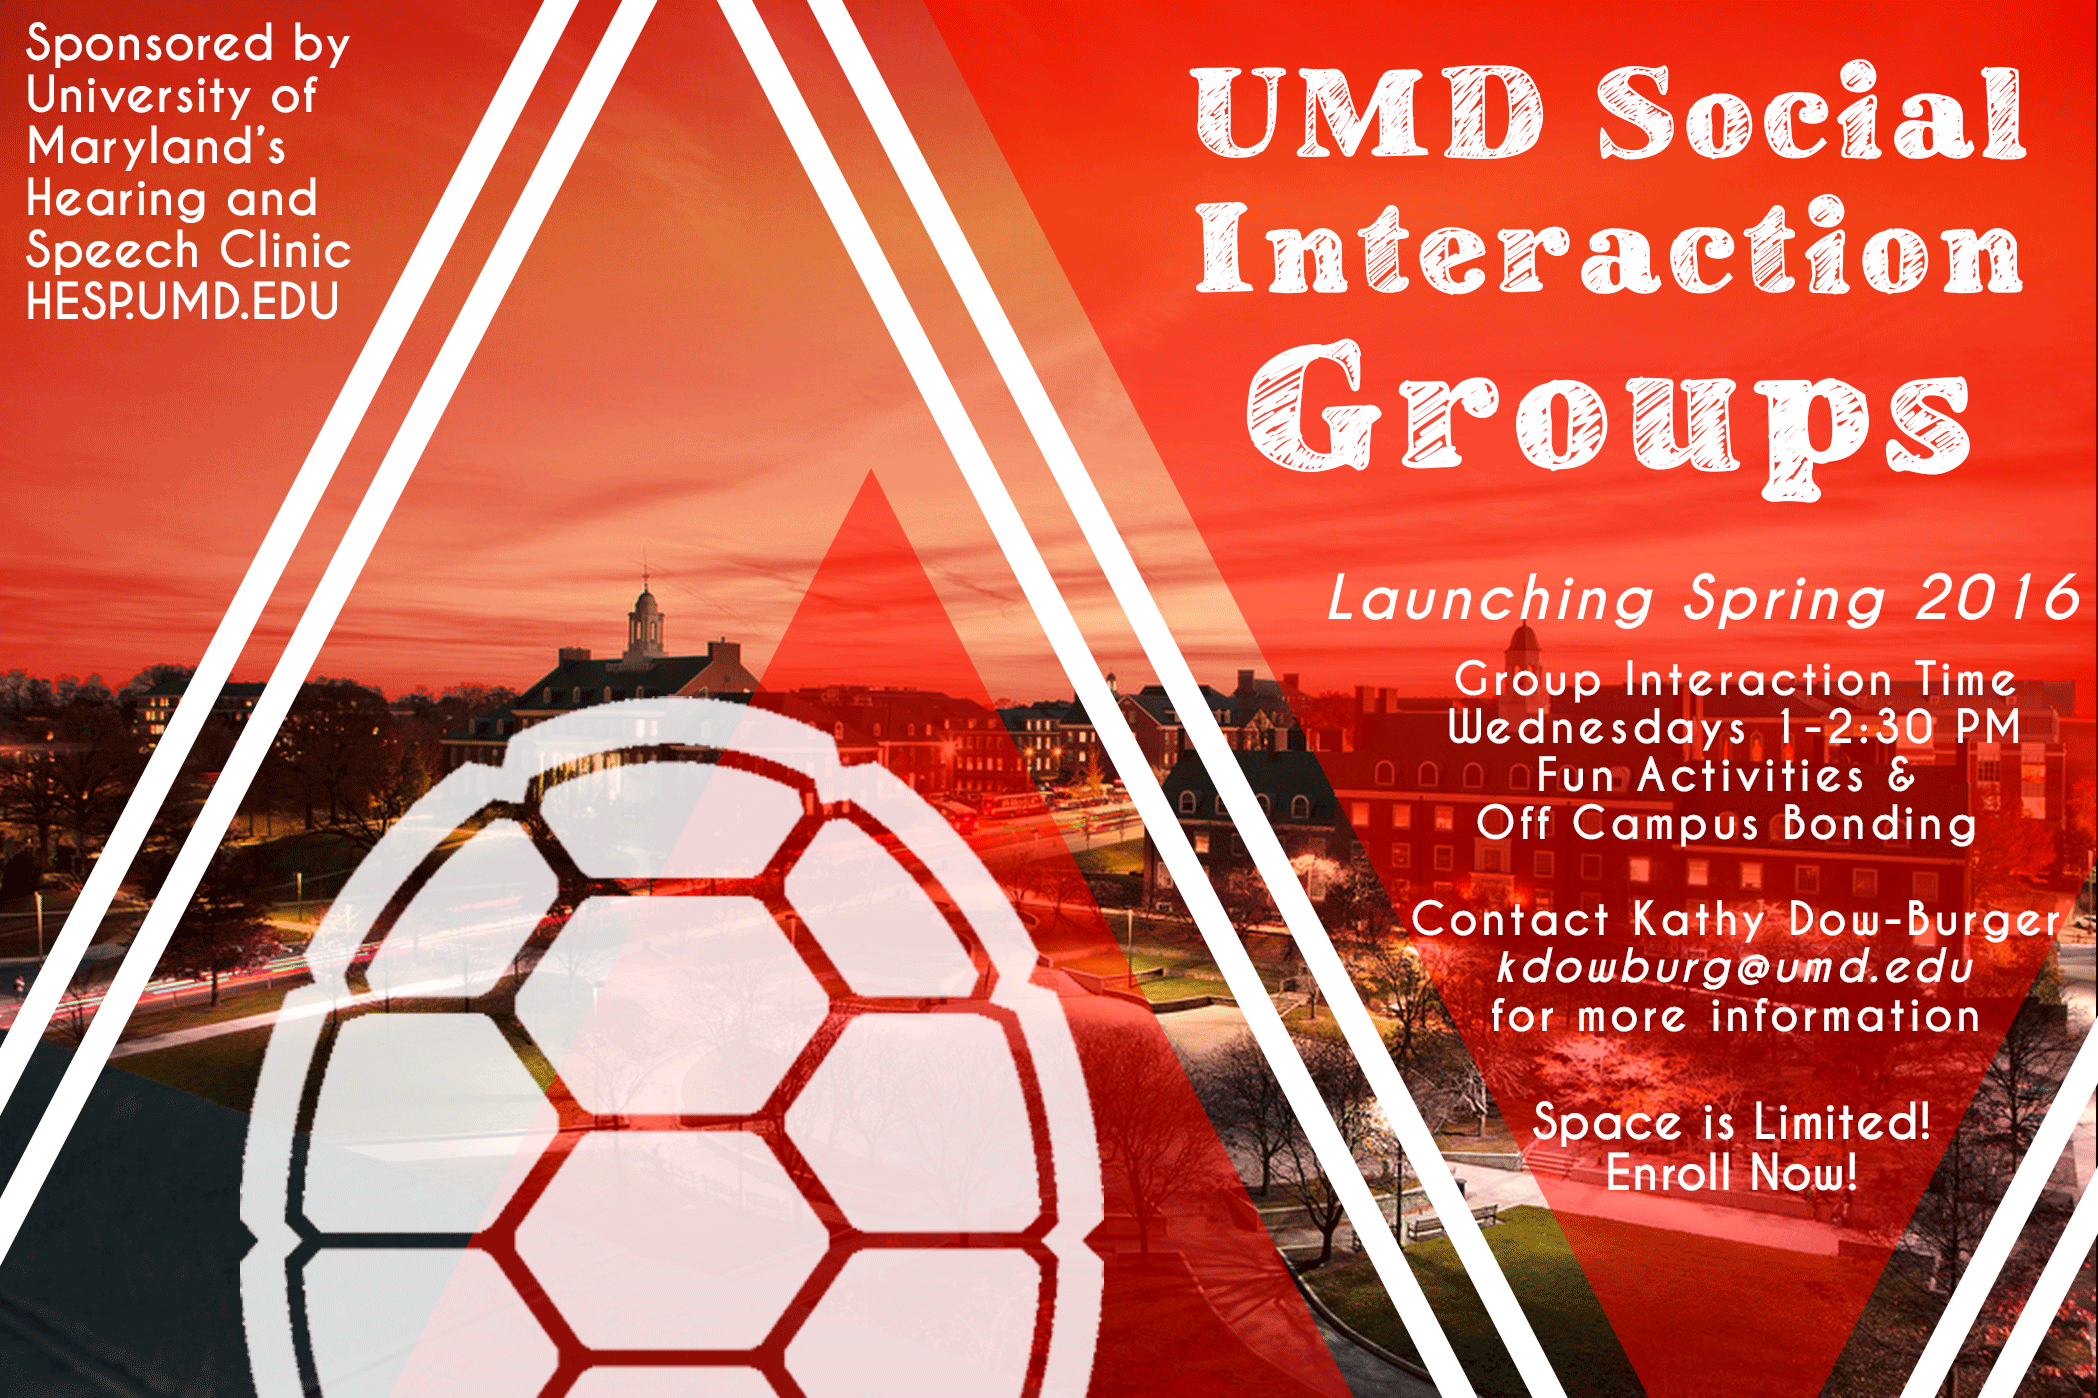 Social interactions groups for UMD students with high functioning